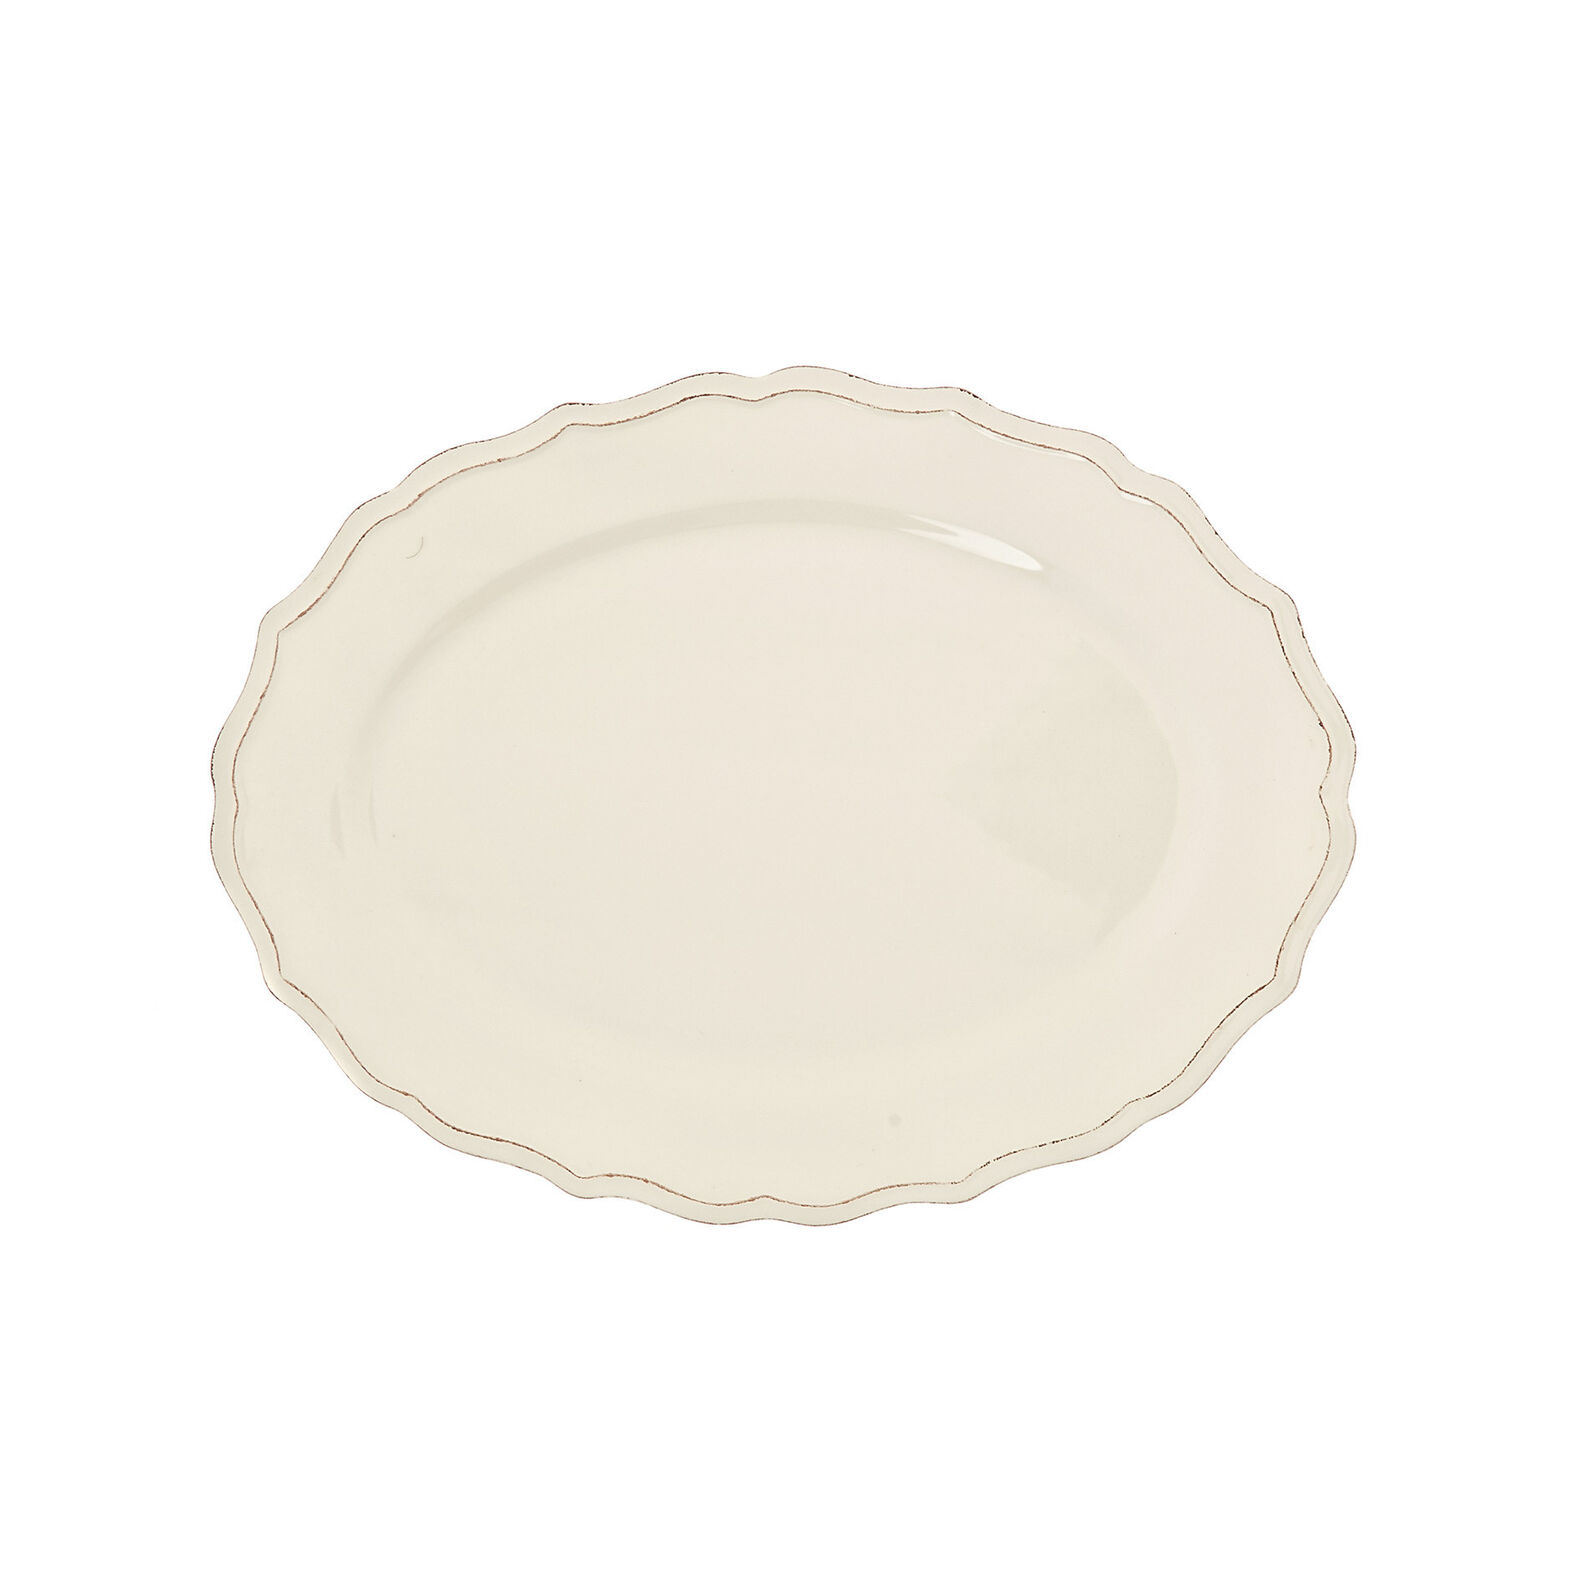 Dona Maria ceramic serving dish